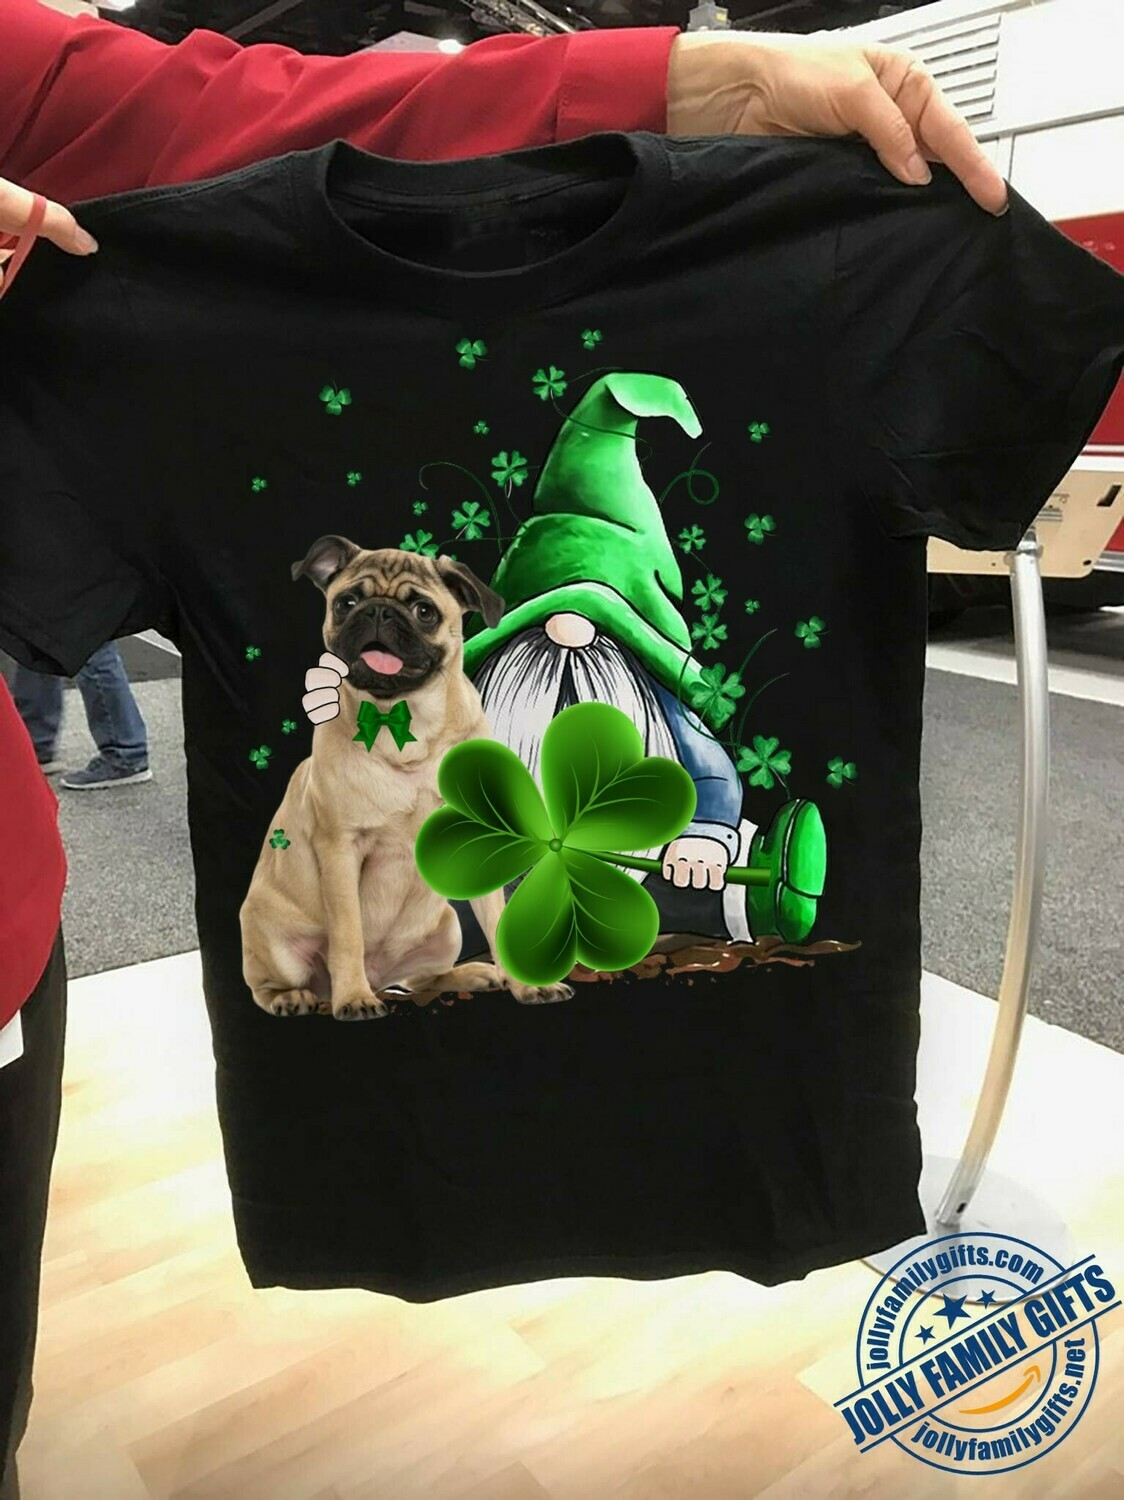 Irish Pug Breed dog and Hippie Gnome Hug Green Shamrocks Four Leaf Clover happy Patrick's Day  Unisex T-Shirt Hoodie Sweatshirt Sweater Plus Size for Ladies Women Men Kids Youth Gifts Tee Jolly